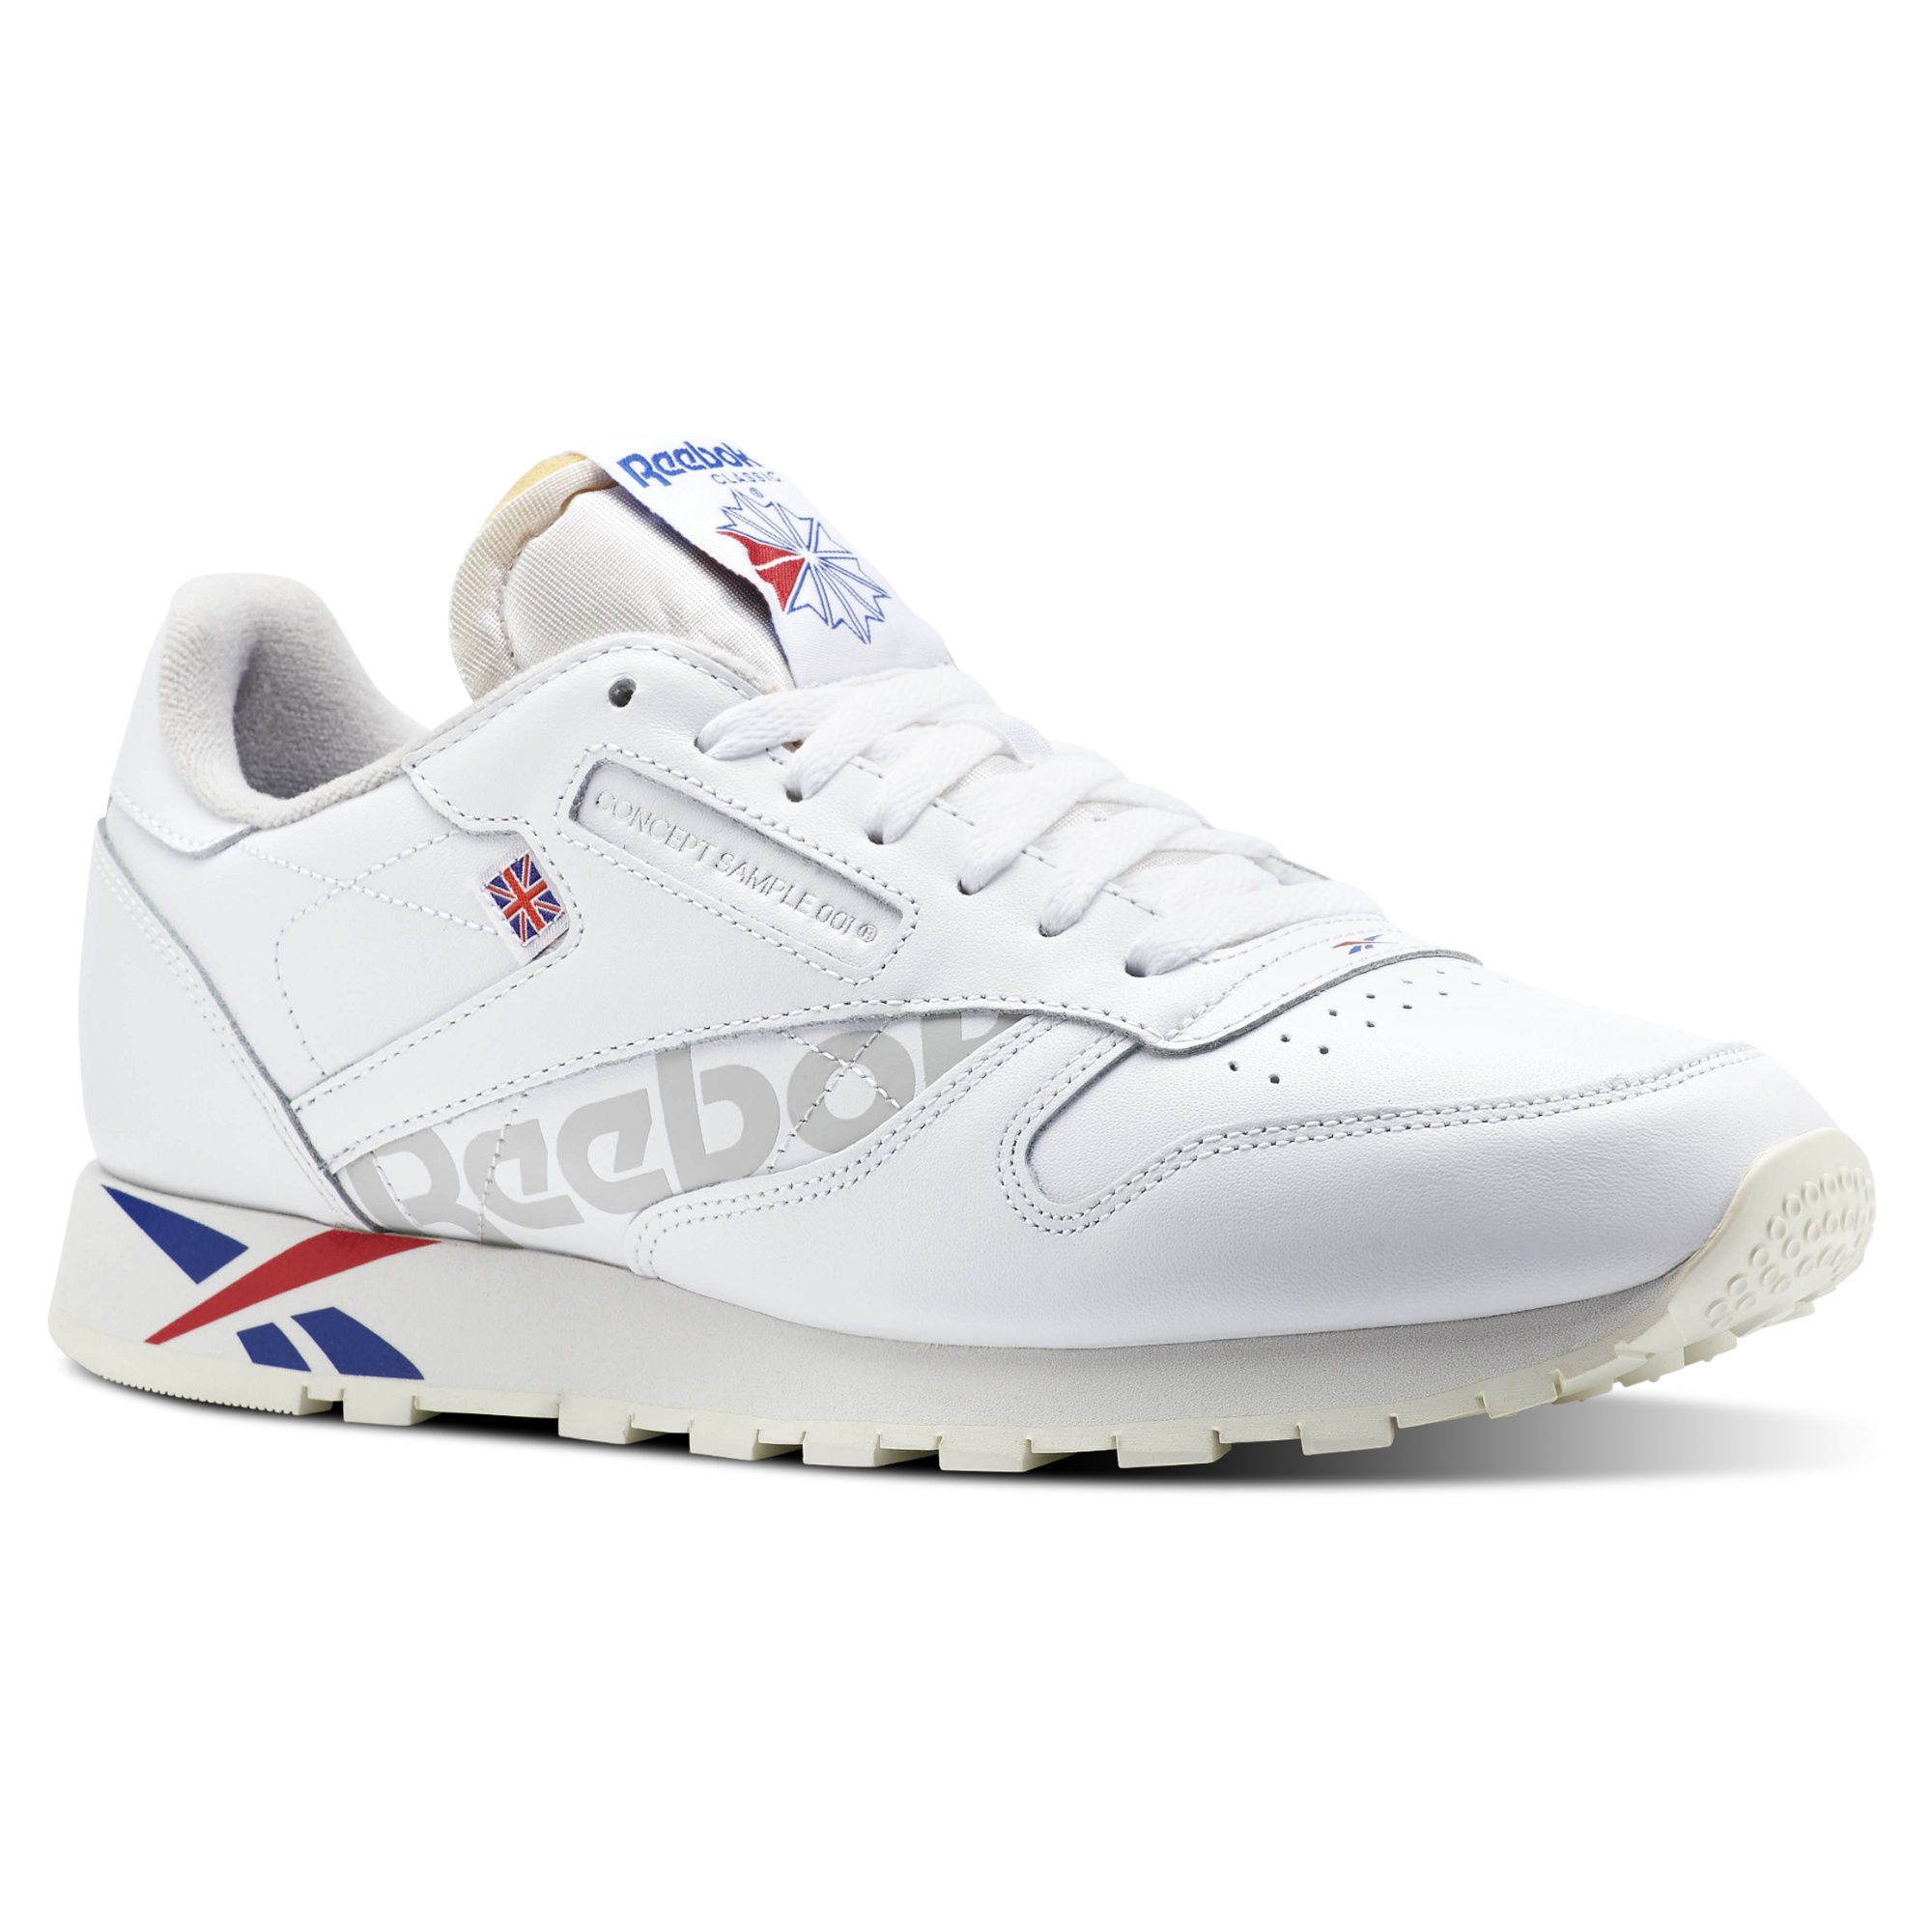 Reebok Classic Leather MU Mens Royal Dark/Red/White Sneakers (804VJNPR)